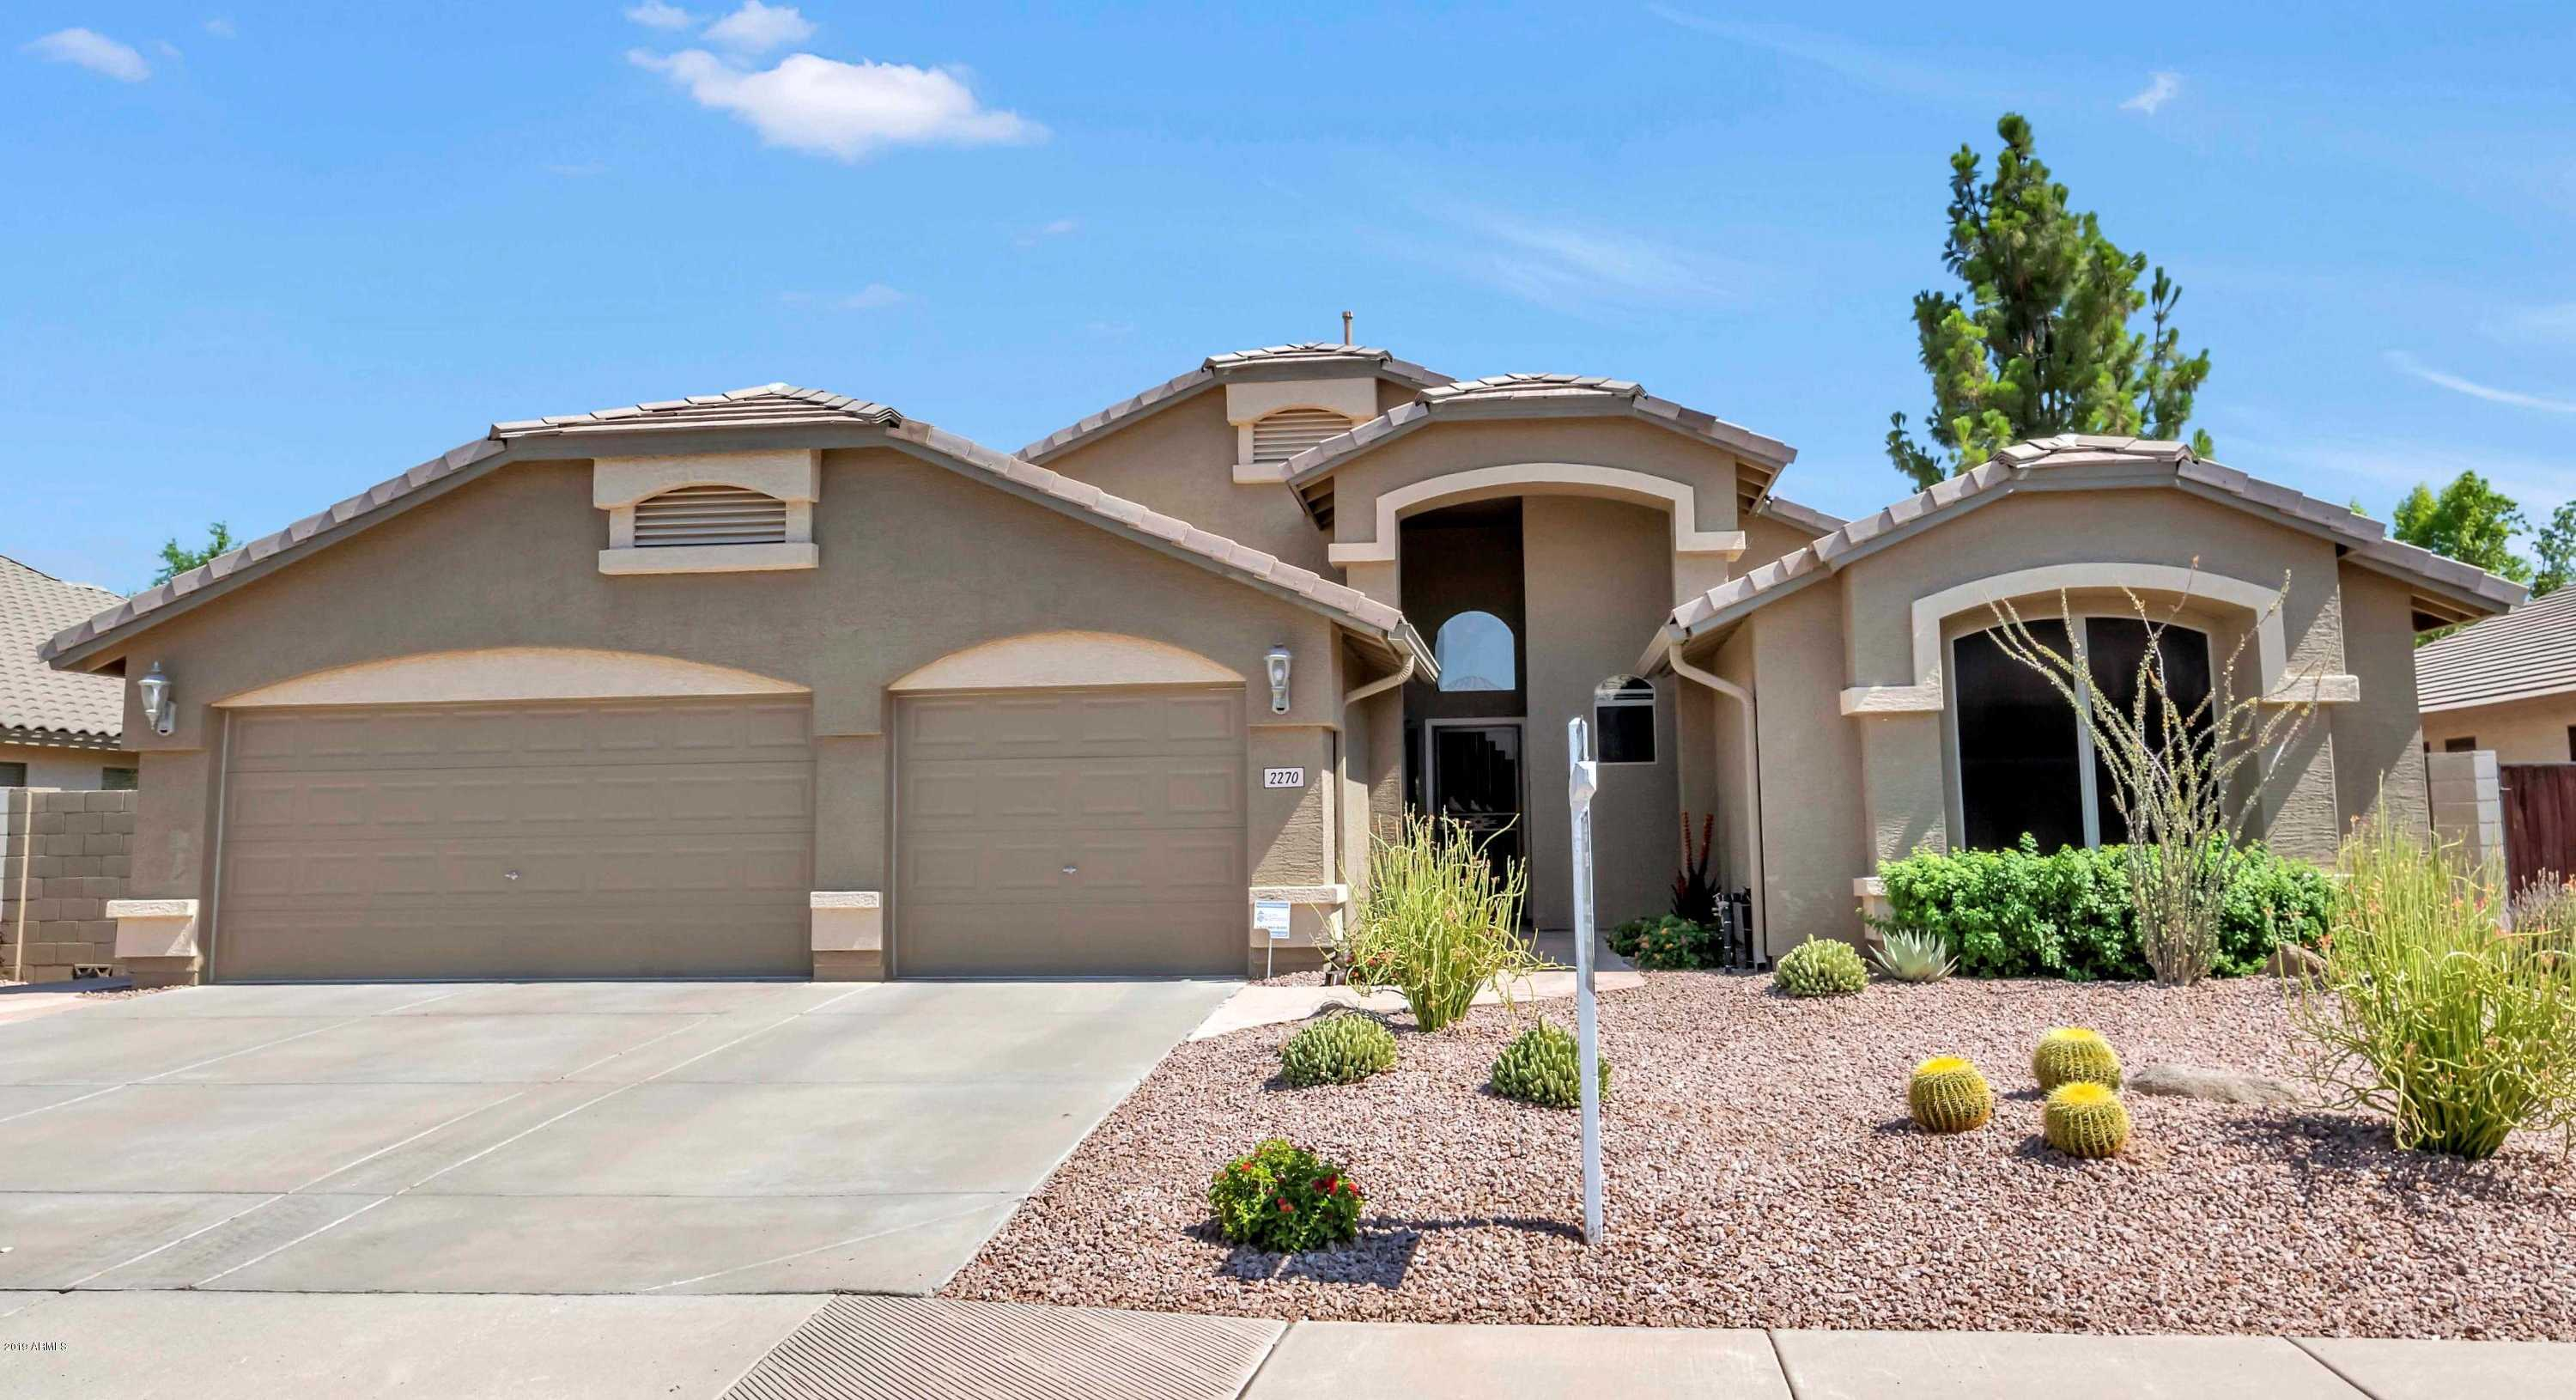 $400,000 - 4Br/2Ba - Home for Sale in Kempton Crossing, Chandler